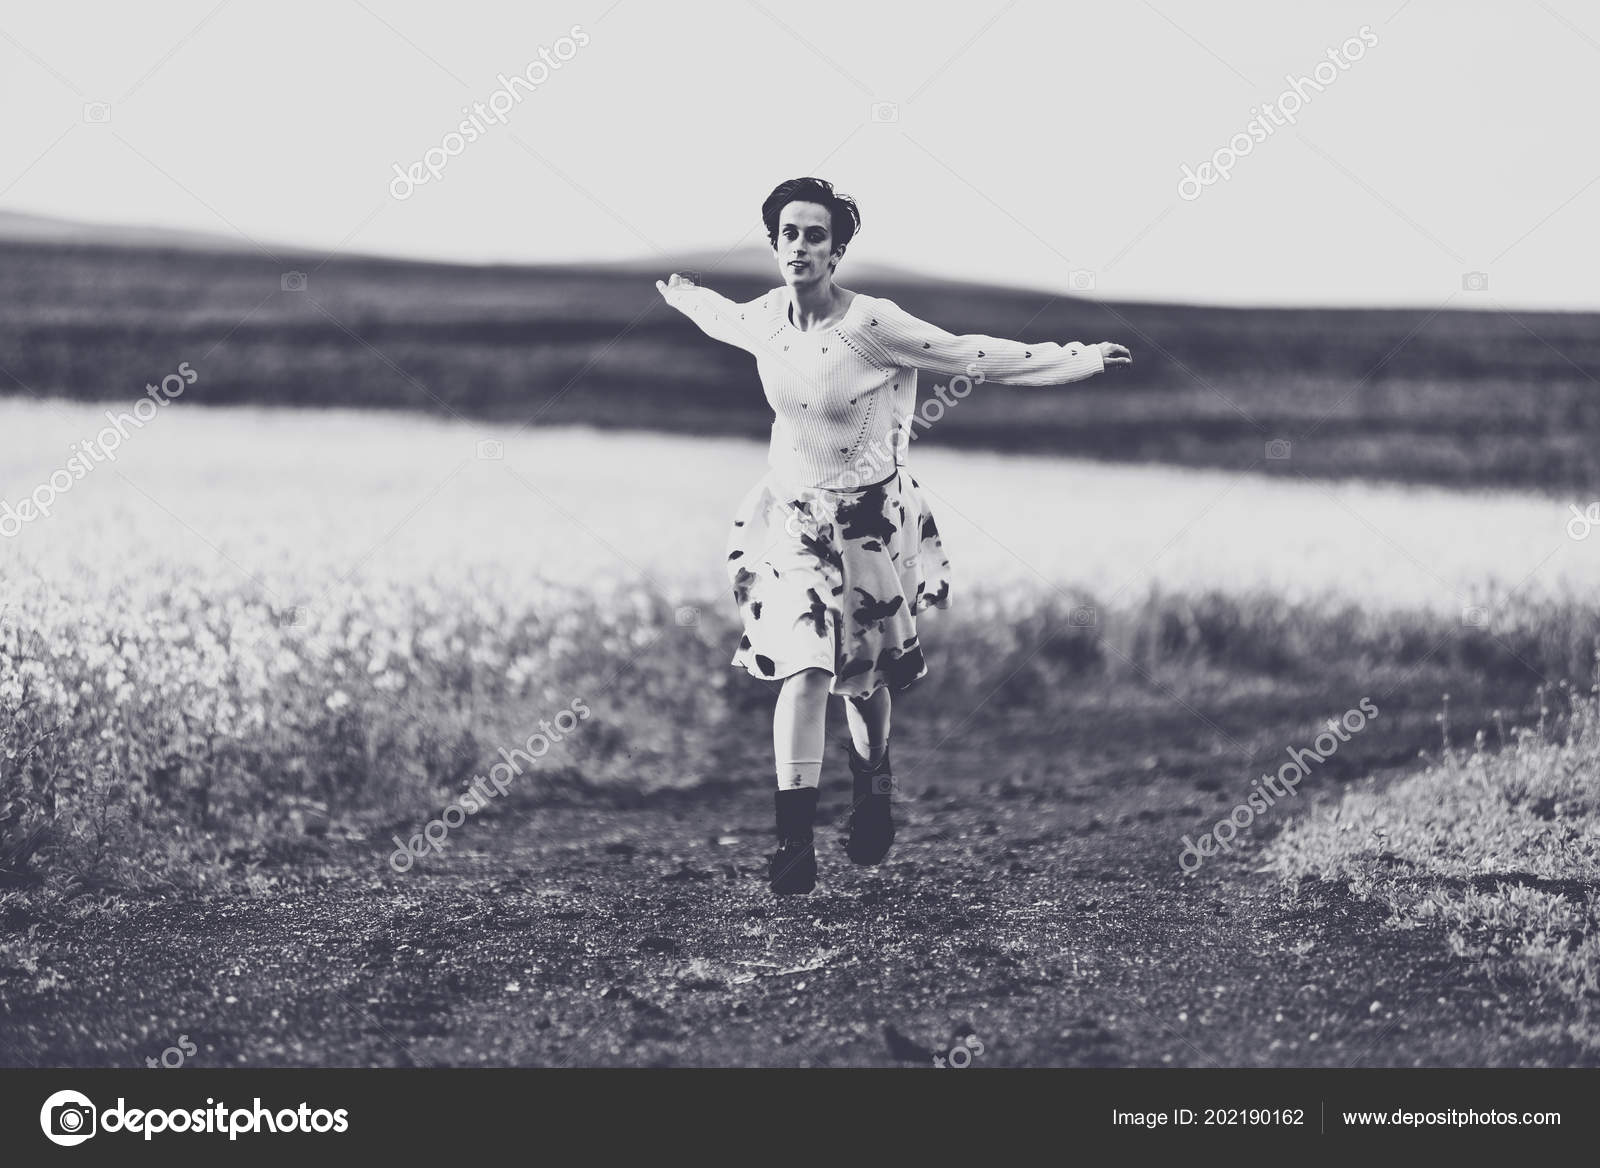 2a72d2e105 Woman Skirt Running Countryside Road Freedom Concept Black White Toned —  Stock Photo